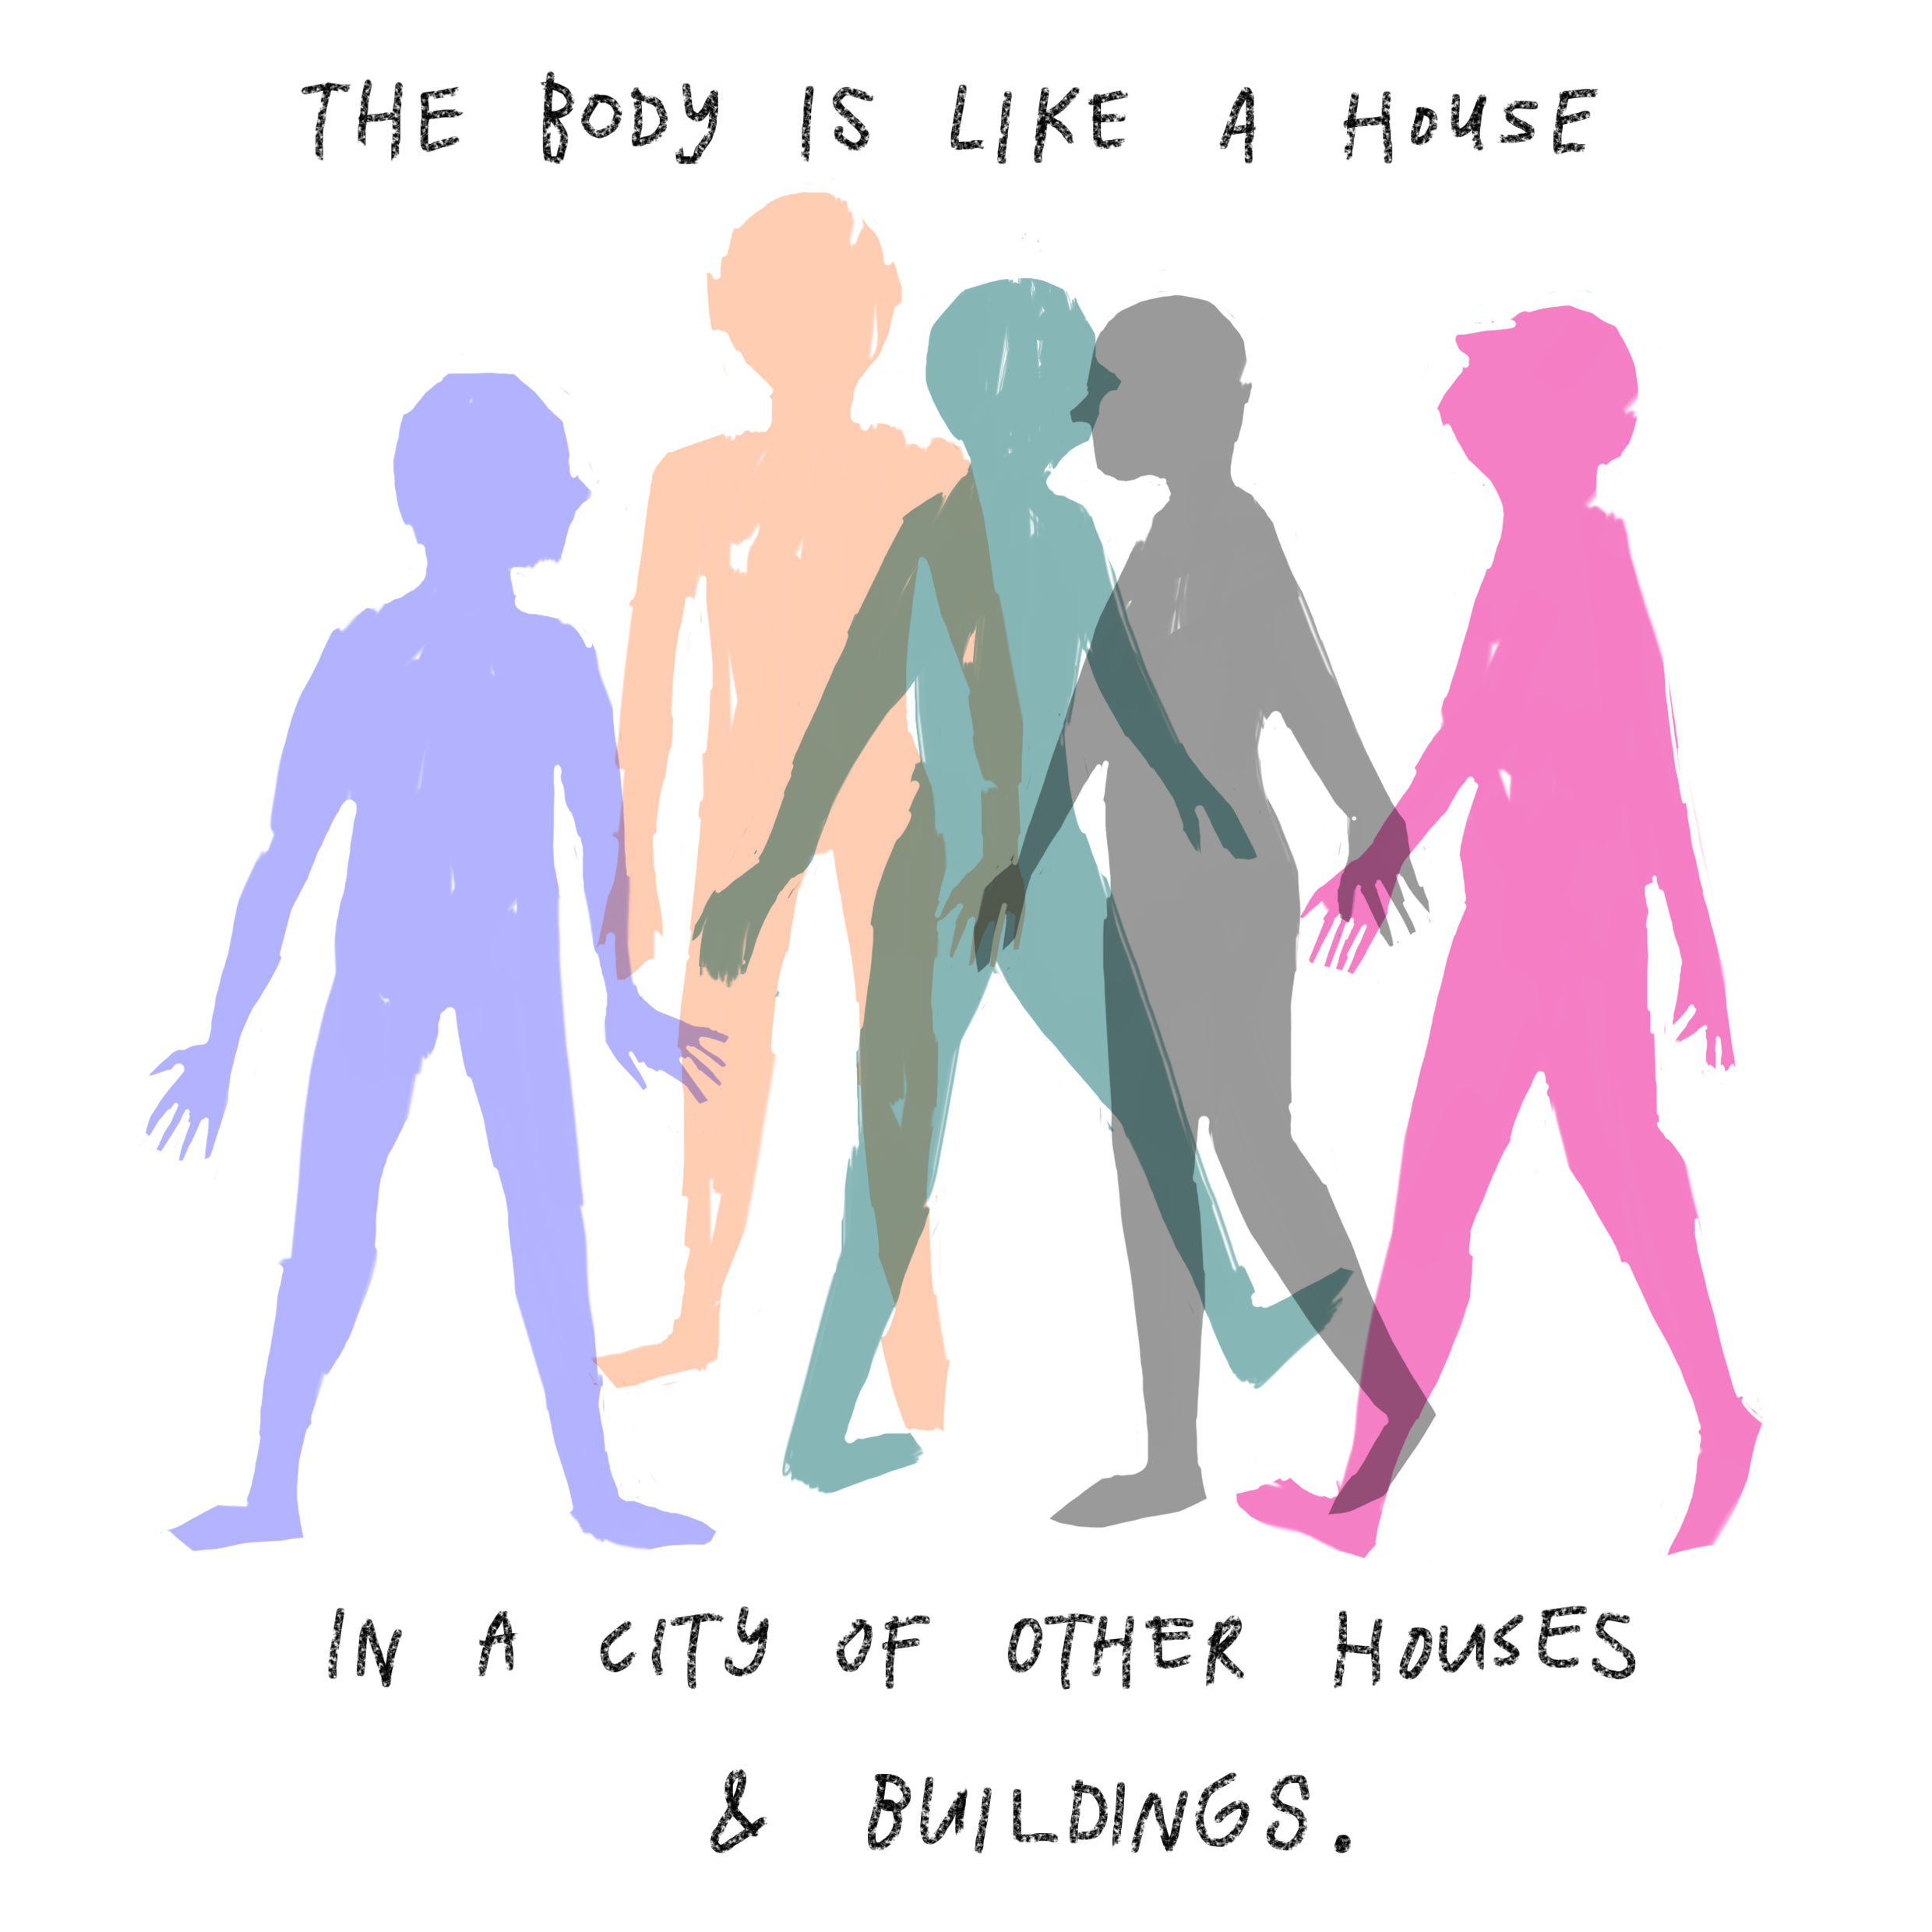 'The body is like a house in a city of other houses and buildings.'